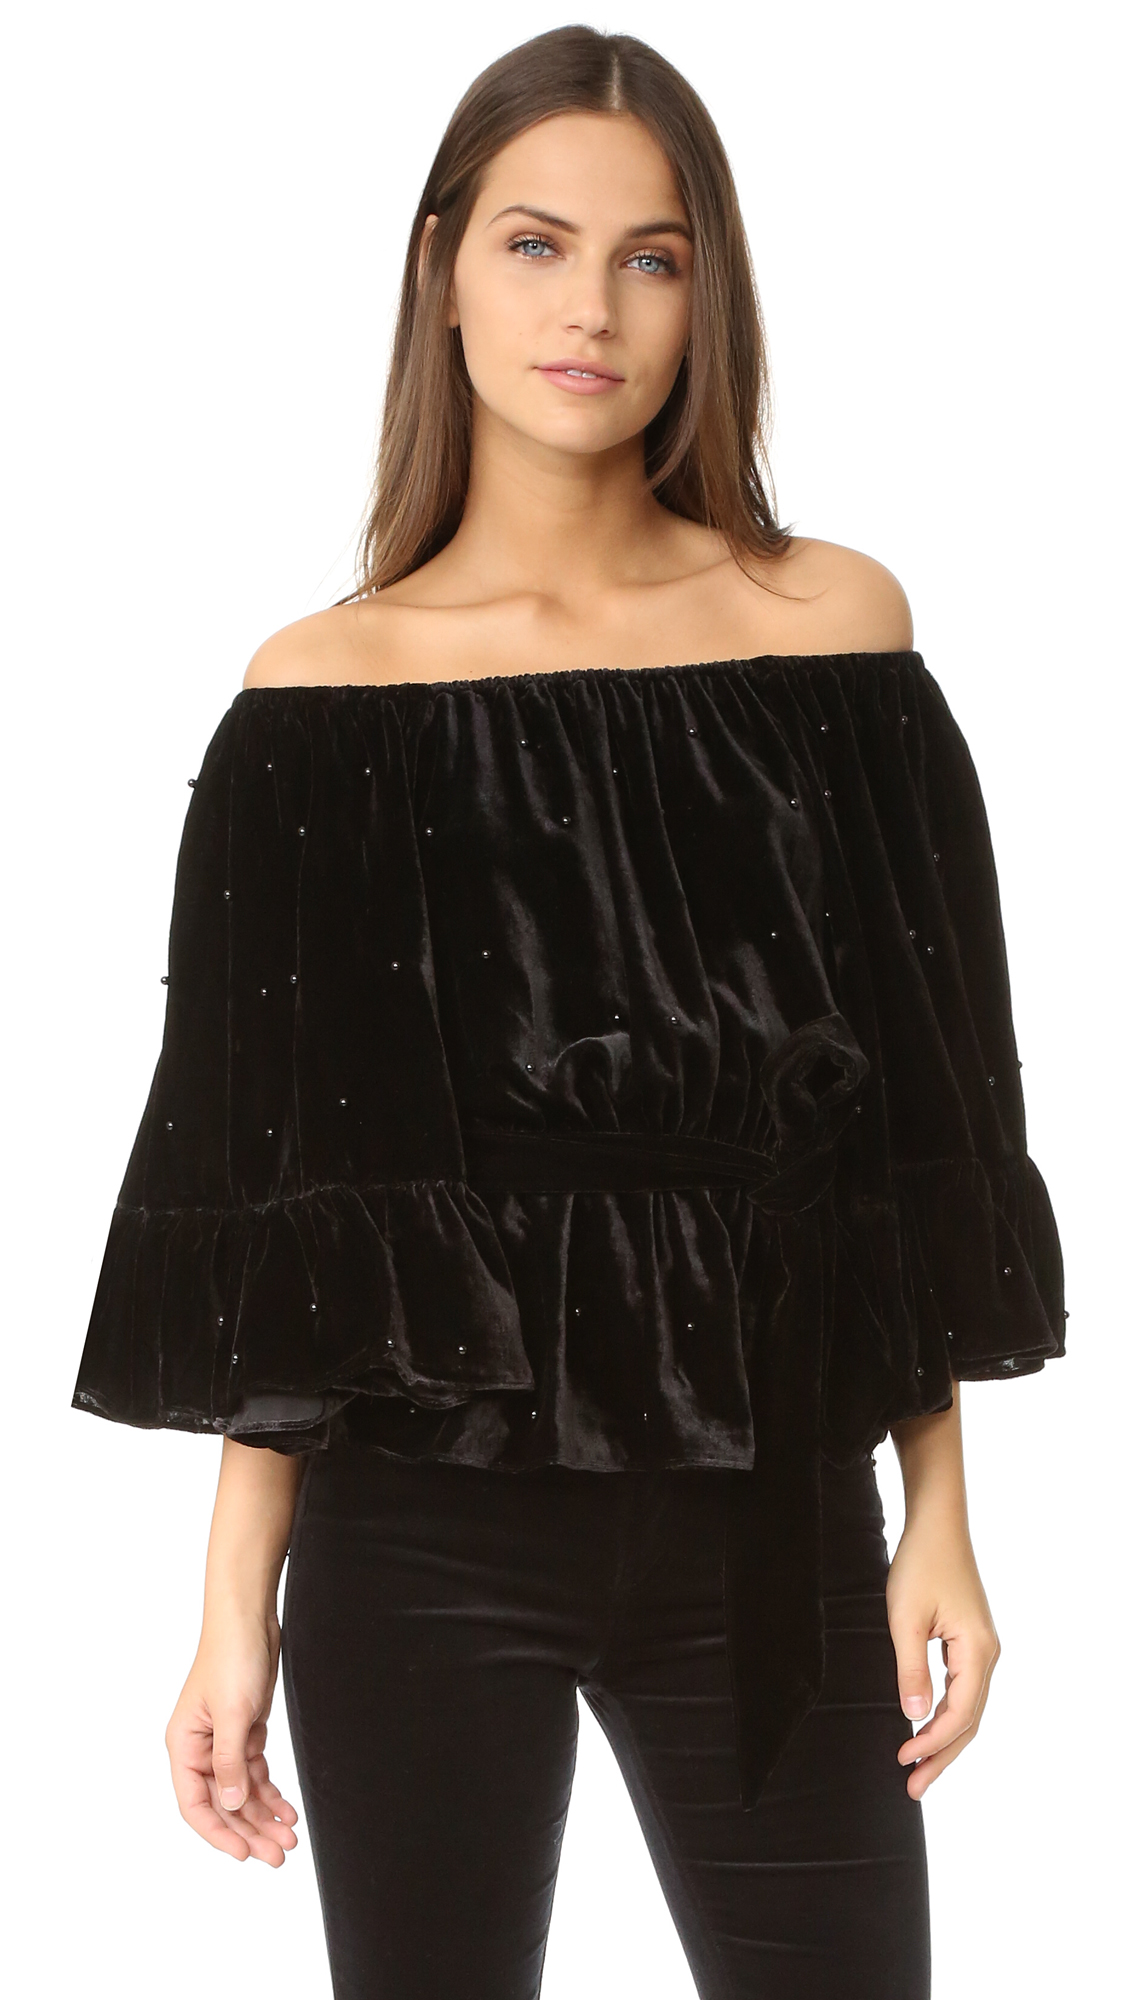 An off shoulder C/Meo Collective top crafted in beaded velvet. Flared 3/4 sleeves and self tie sash at the waist. Covered elastic top hem. Fabric: Velvet. 75% viscose/25% nylon. Dry clean. Imported, China. Measurements Length: 19.75in / 50cm,